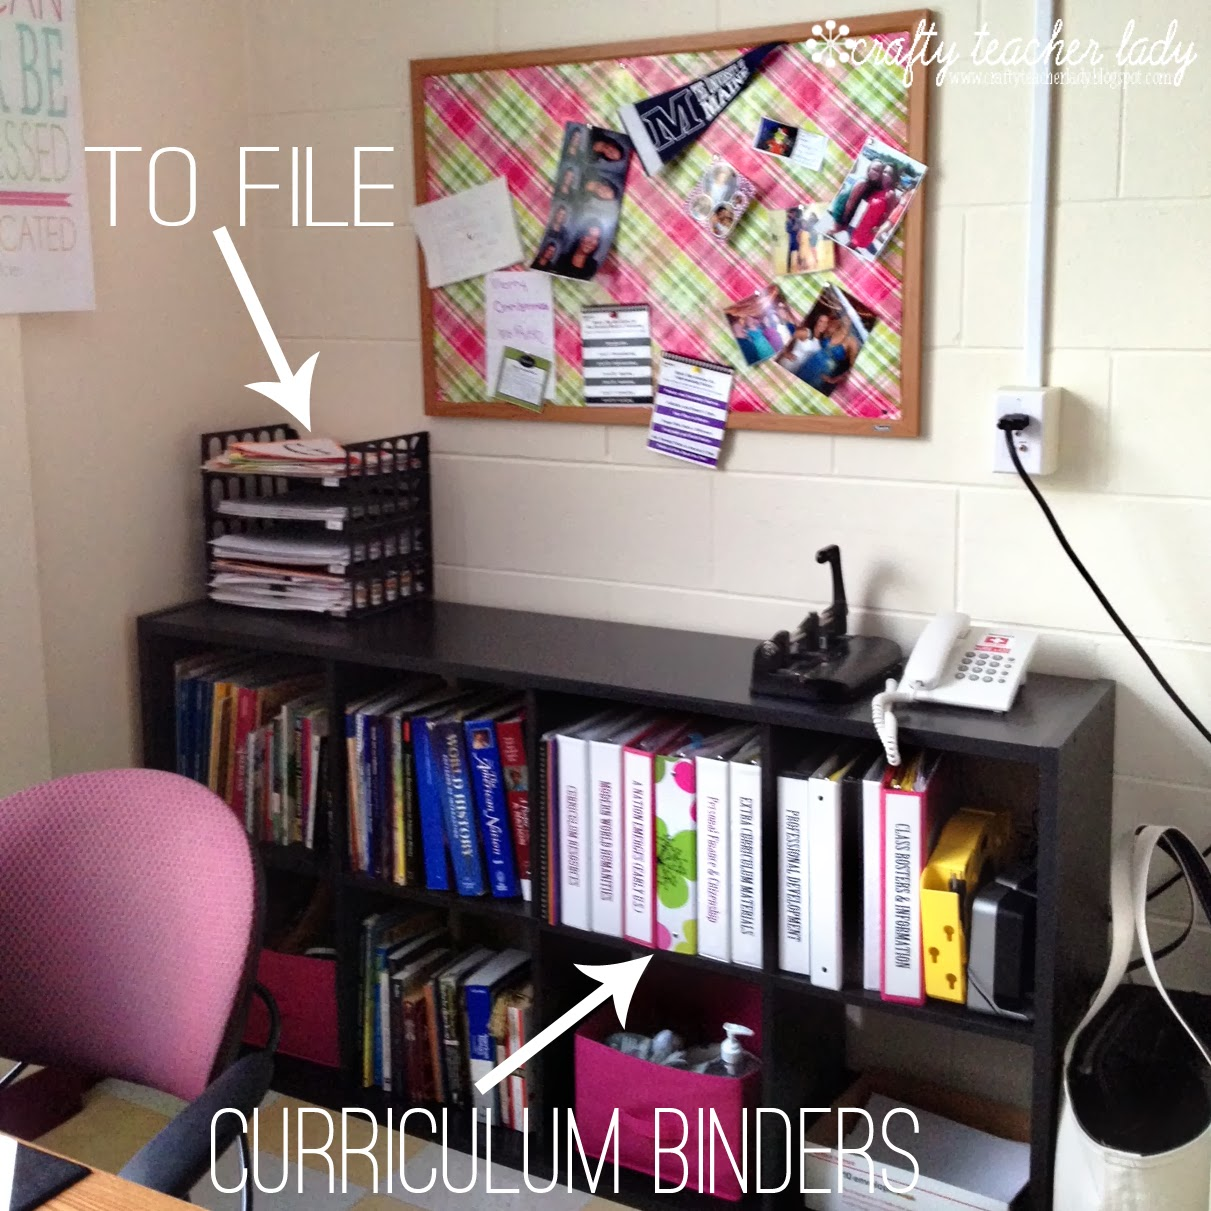 What to do with an extra binder?